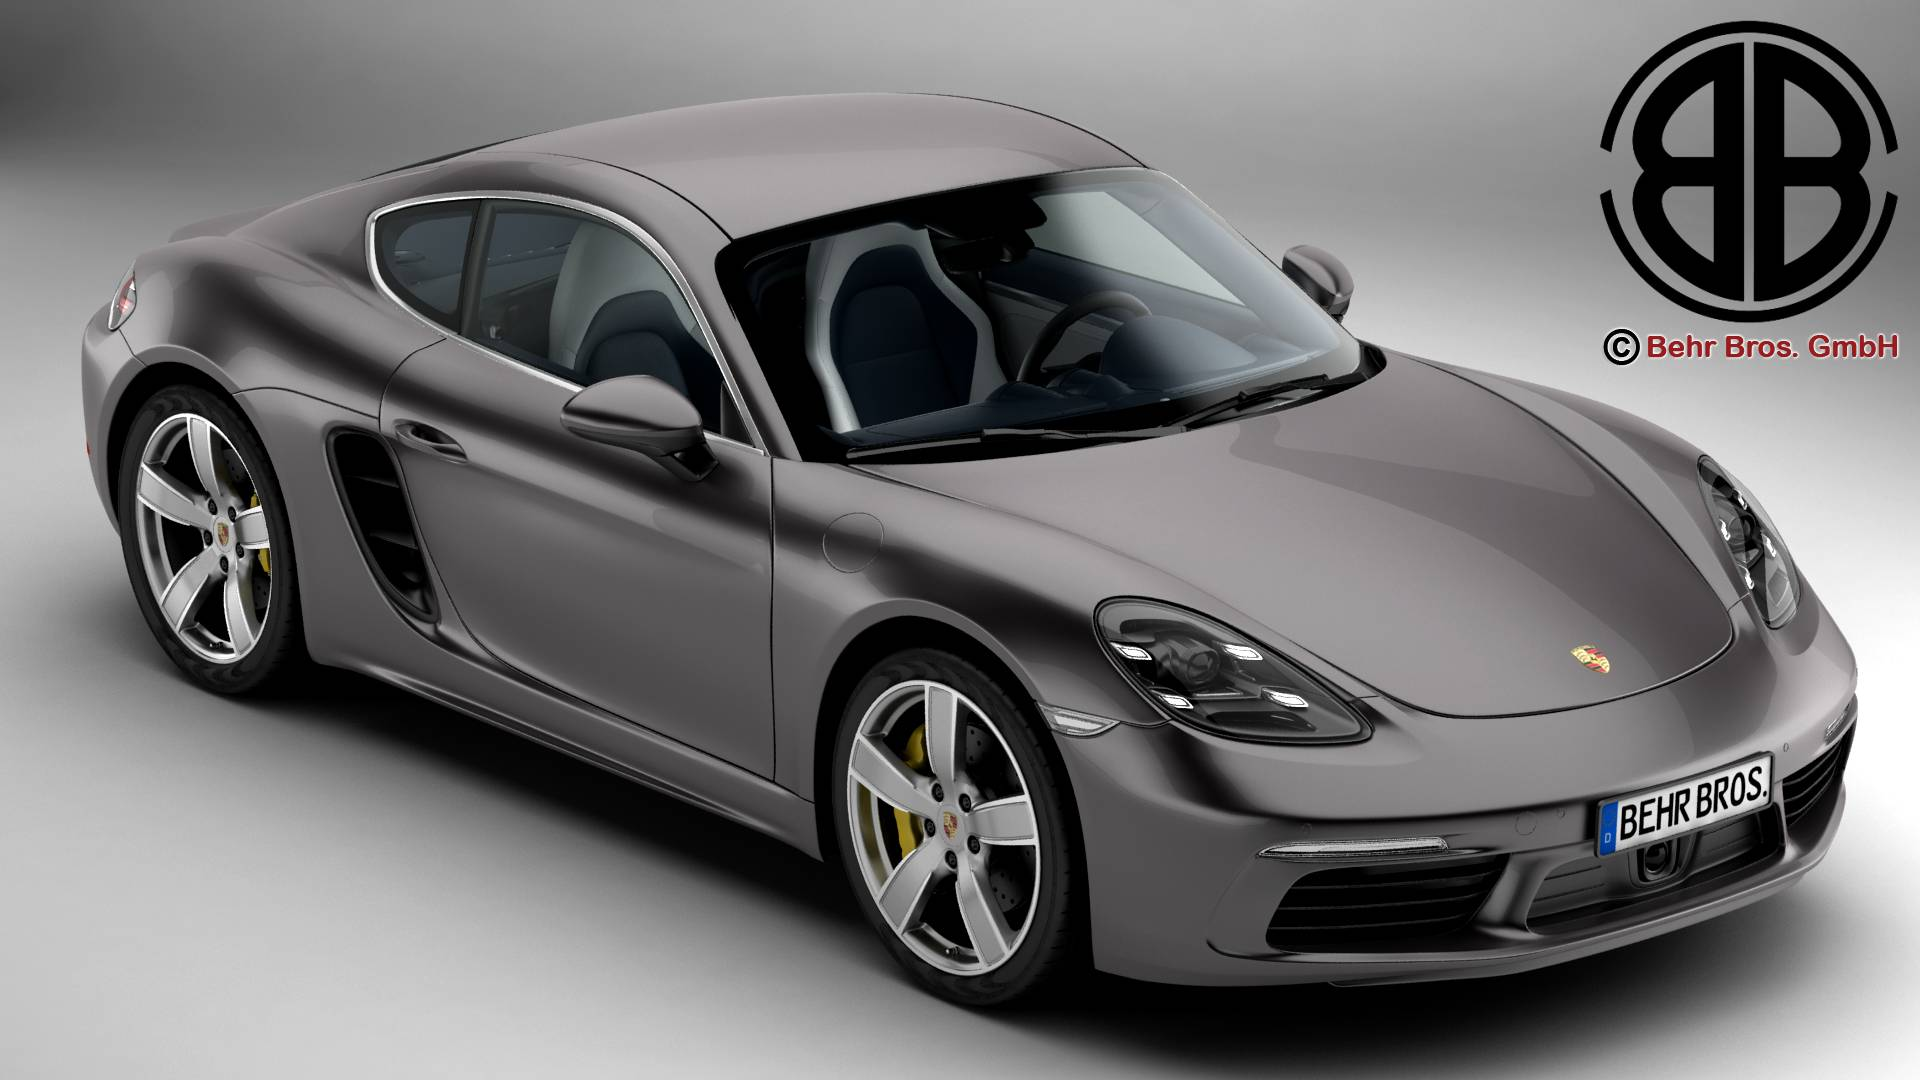 porsche 718 cayman 2017 3d model 3ds max fbx c4d le do thoil 220070